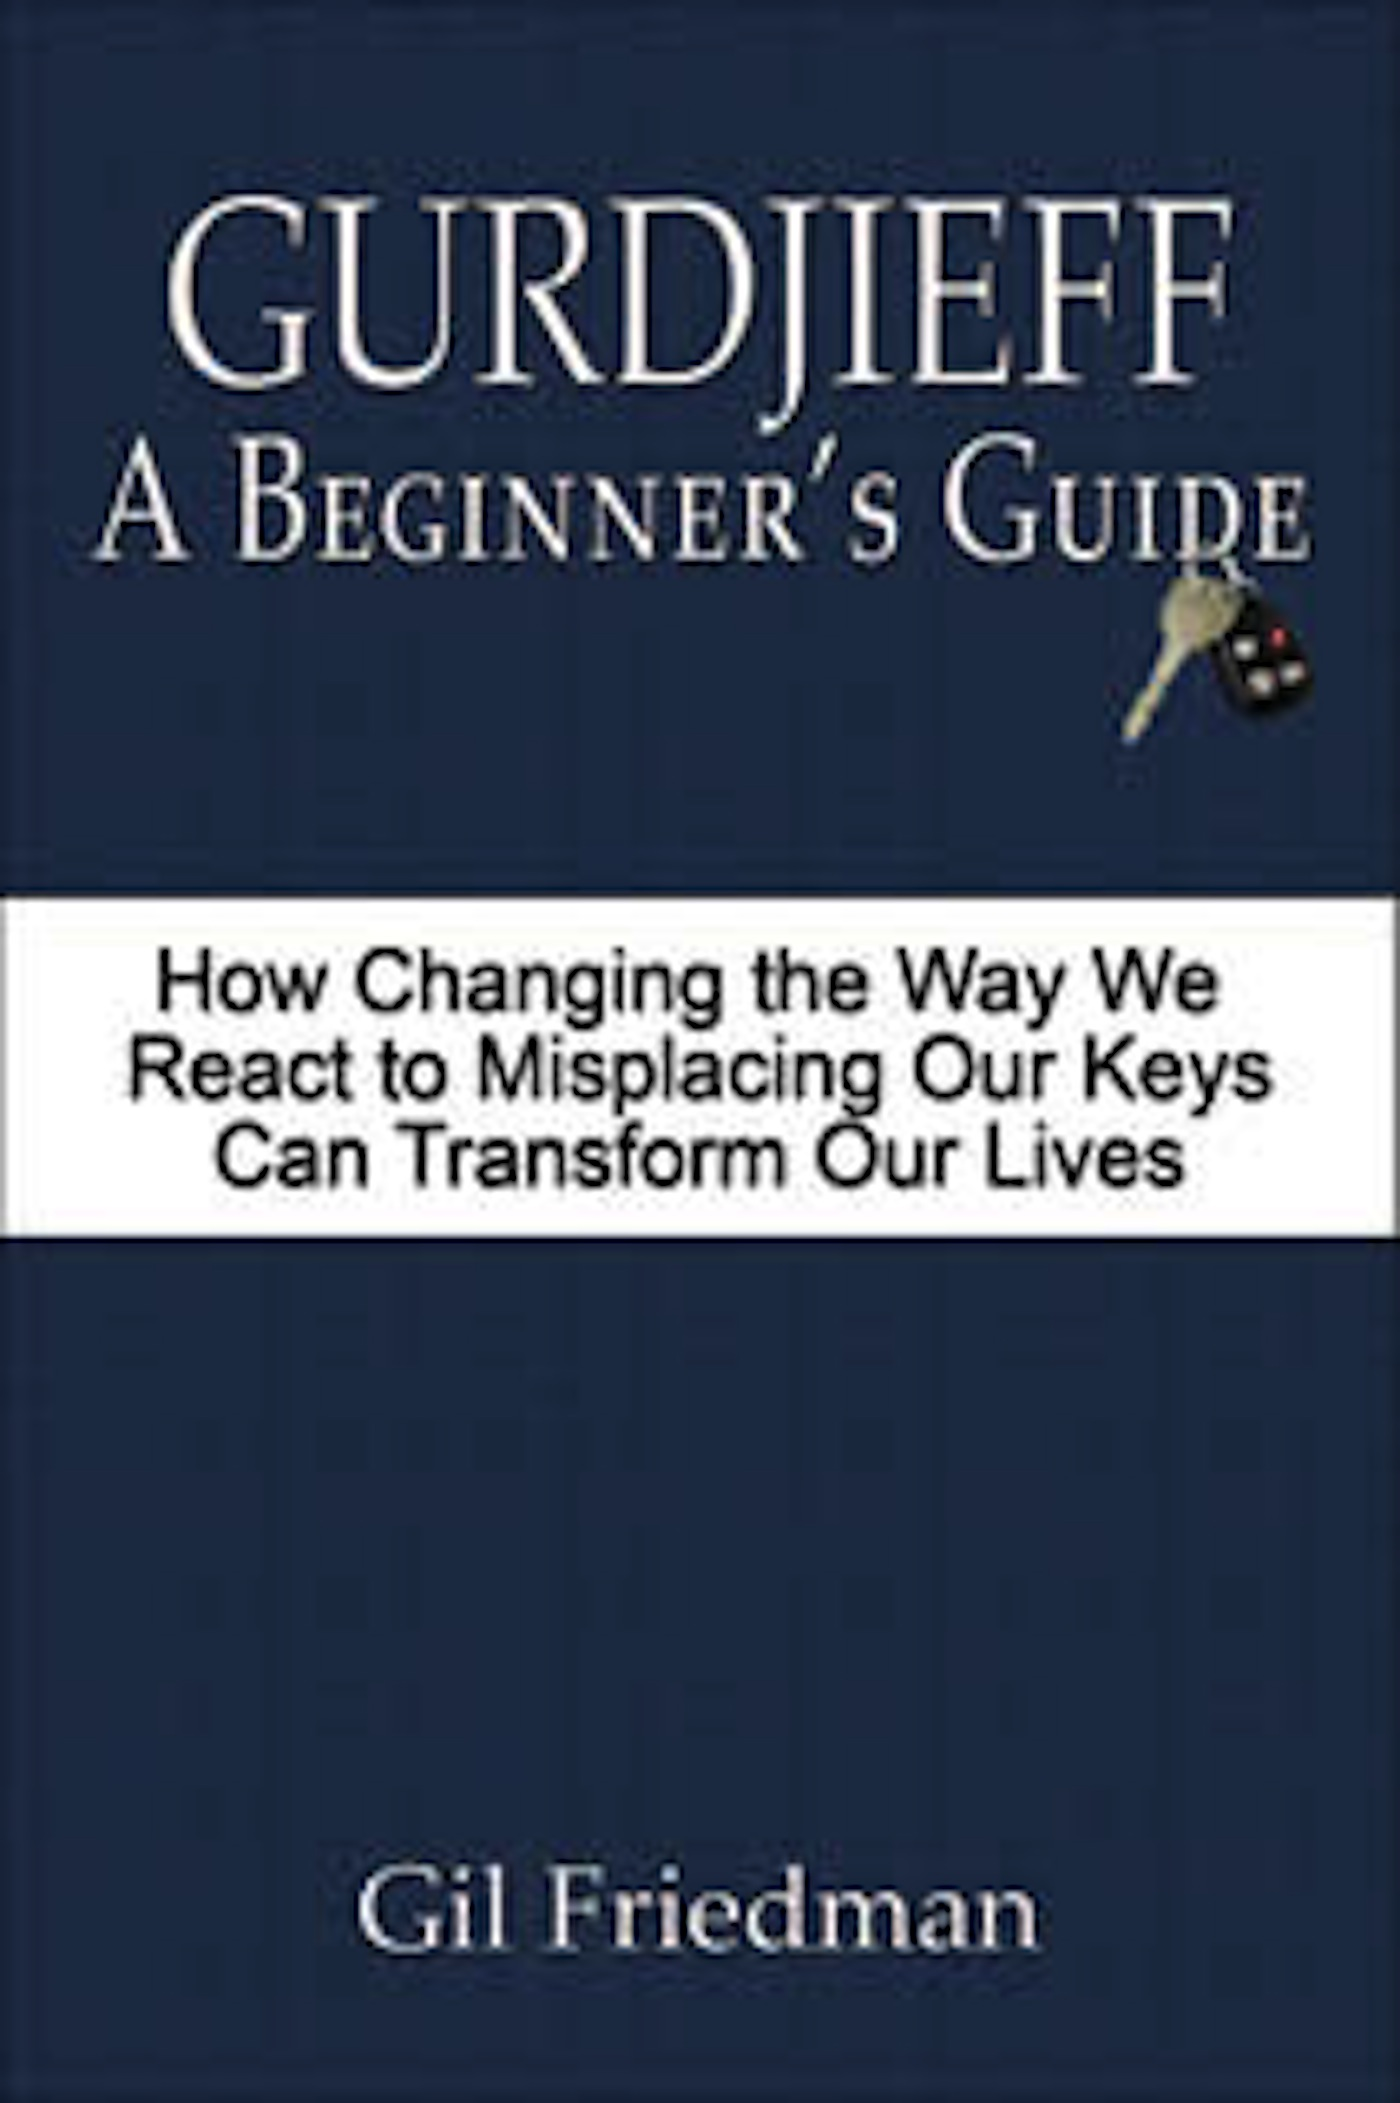 Gurdjieff: A Beginner's Guide - How Changing the Way We React to Misplacing  Our Keys Can Transform Our Lives, an Ebook by Gil Friedman